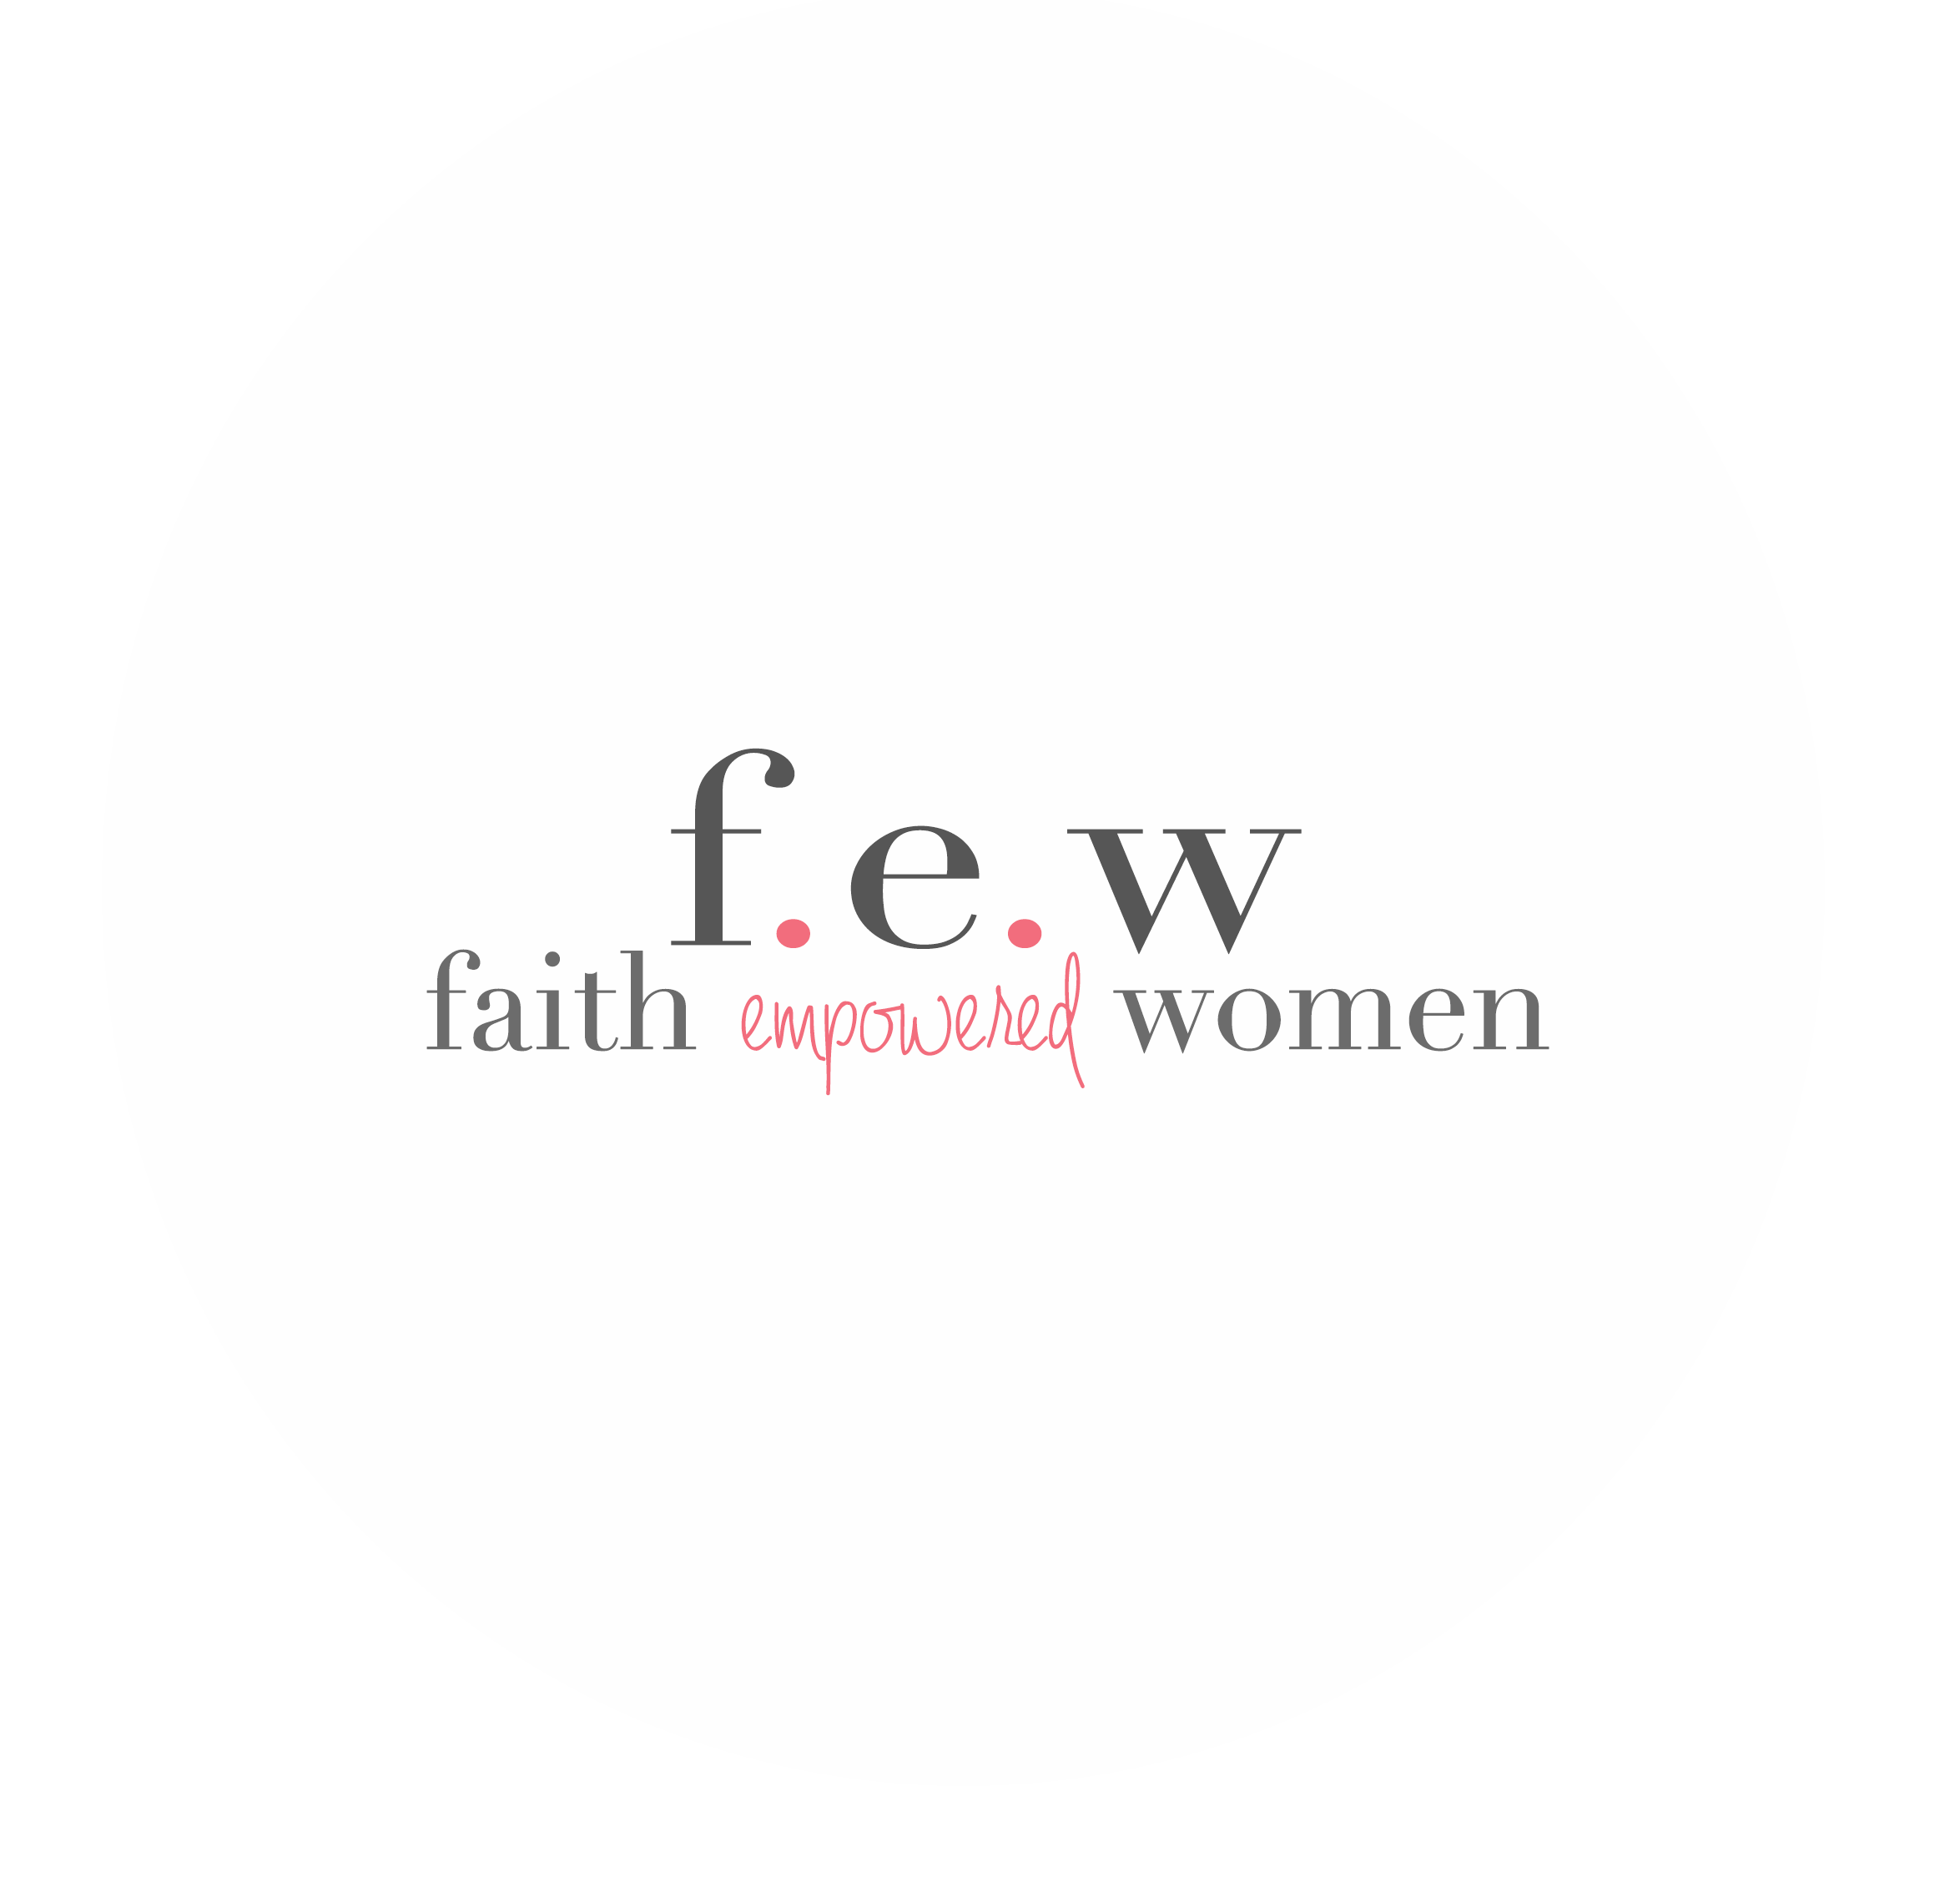 FAITH EMPOWERED WOMEN